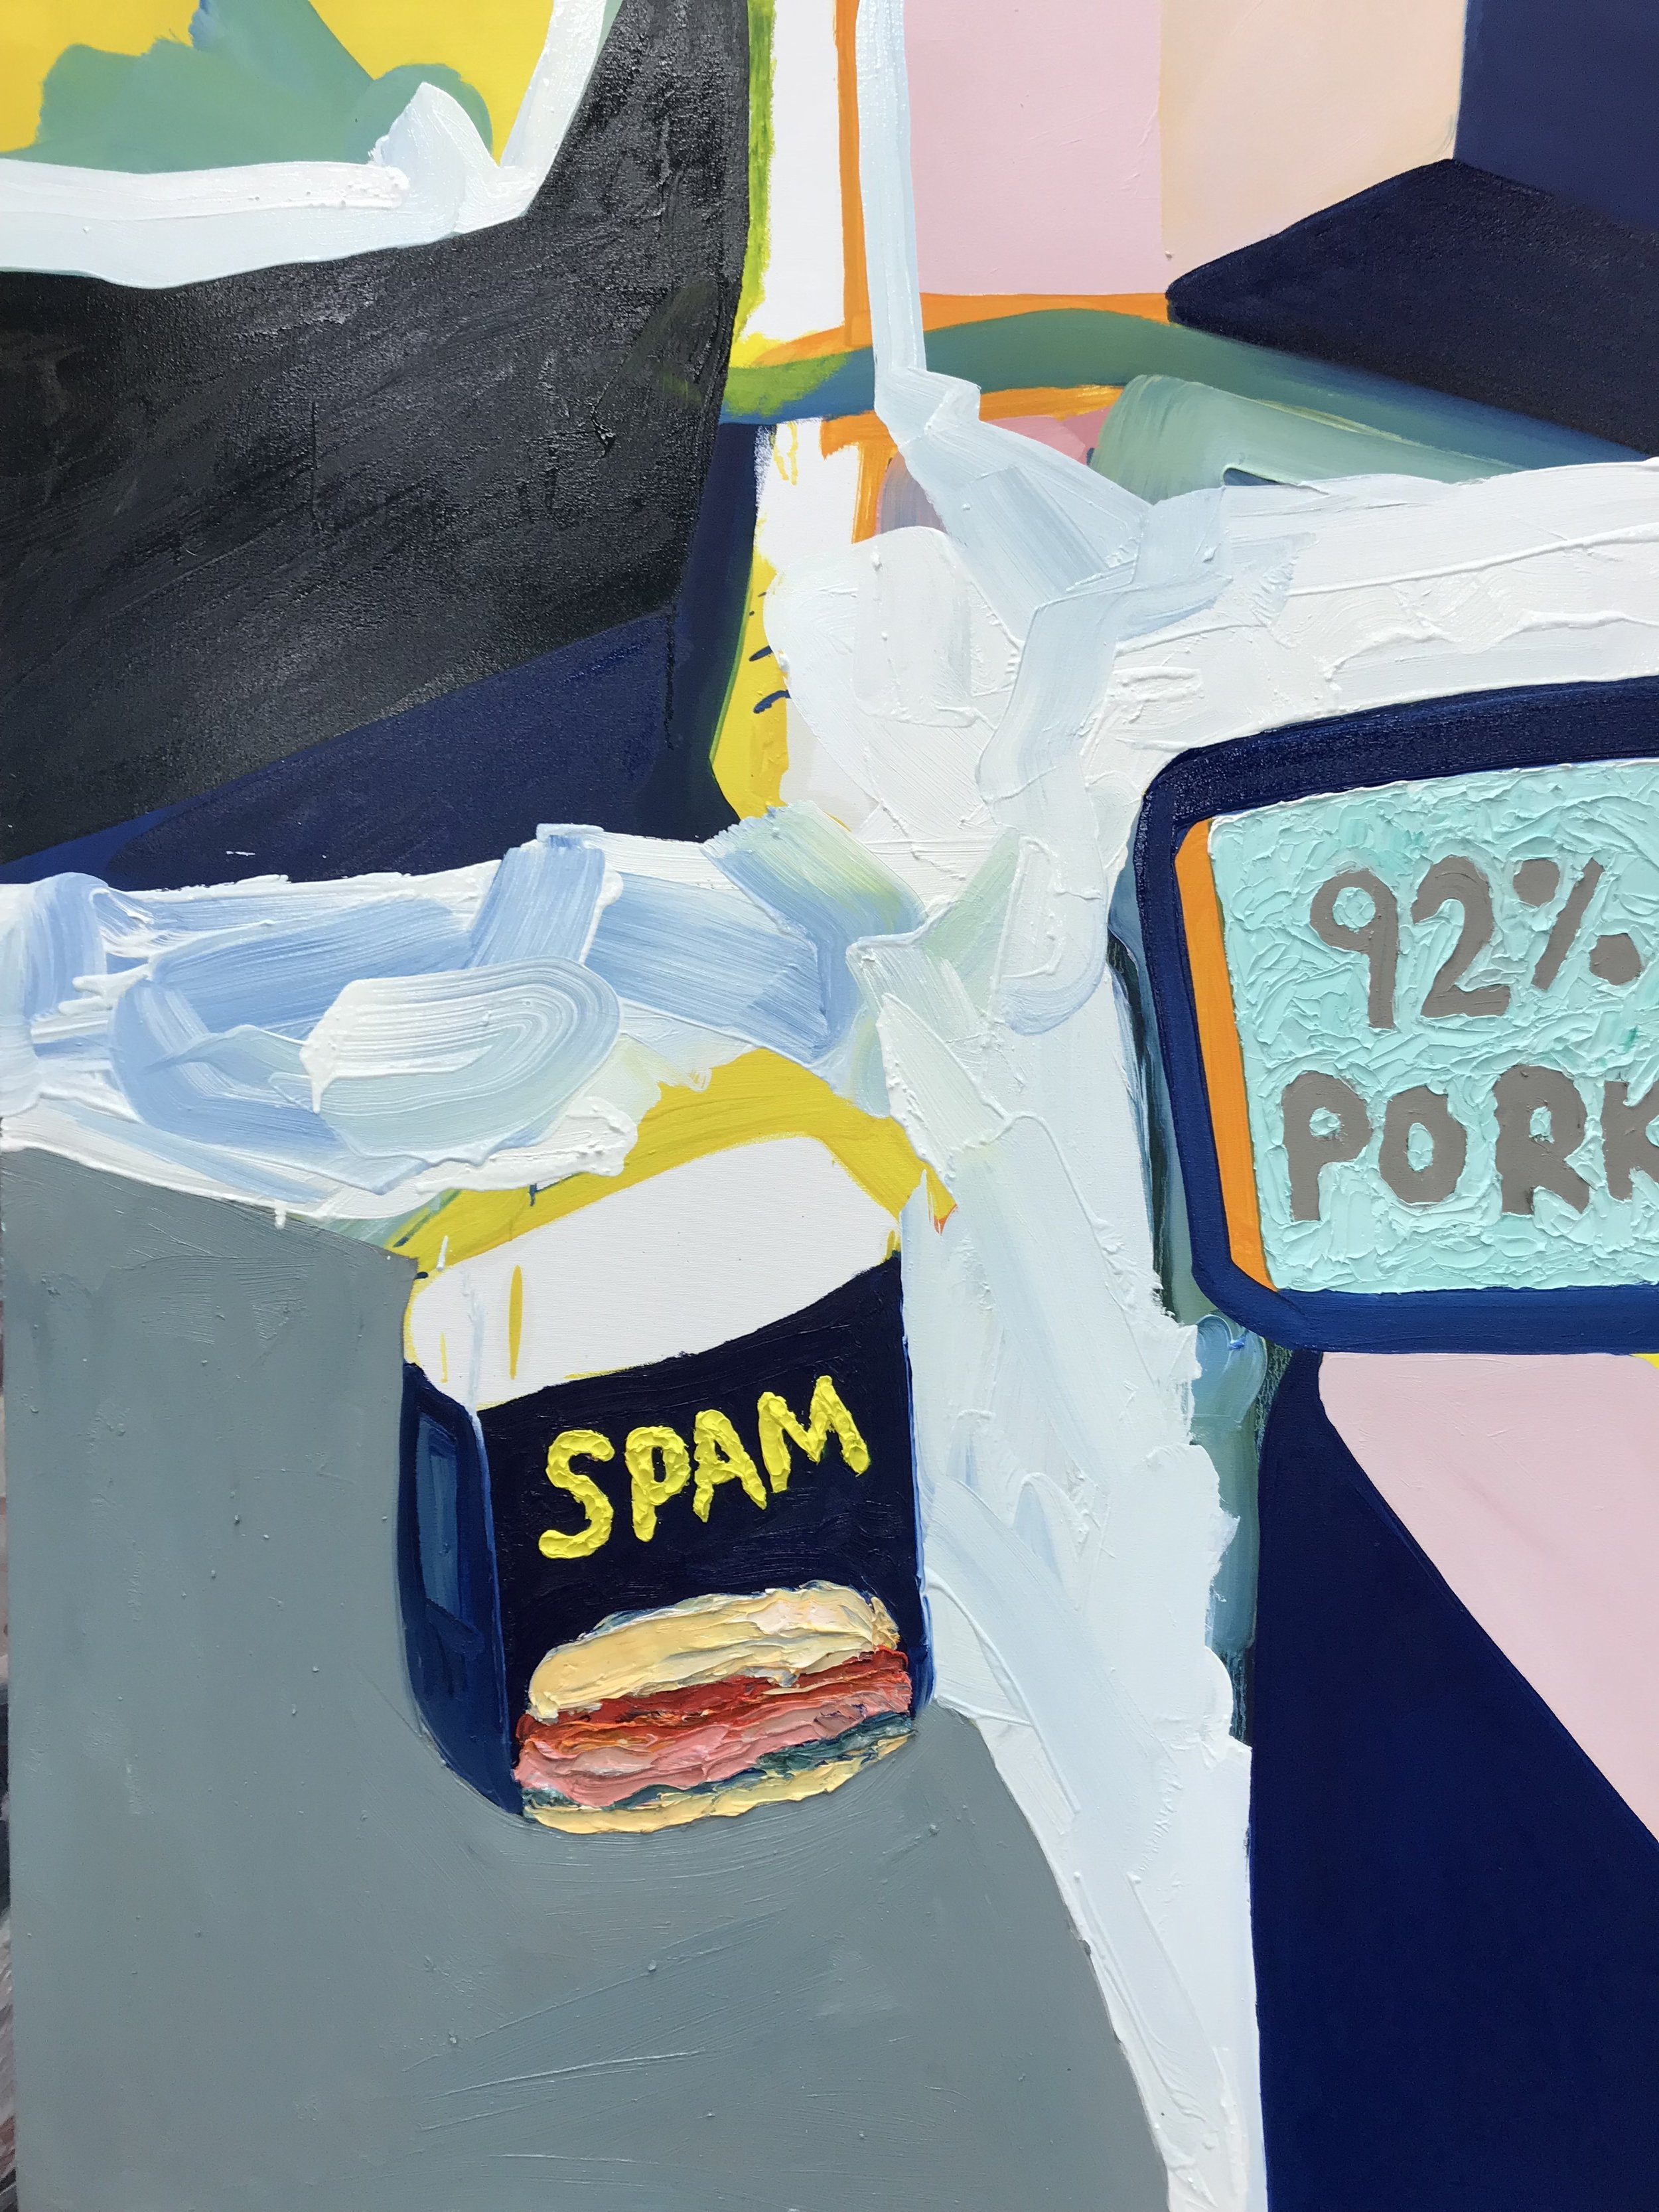 The spam can painting appears to be nearly done. I will put this aside for now and work on the other painting